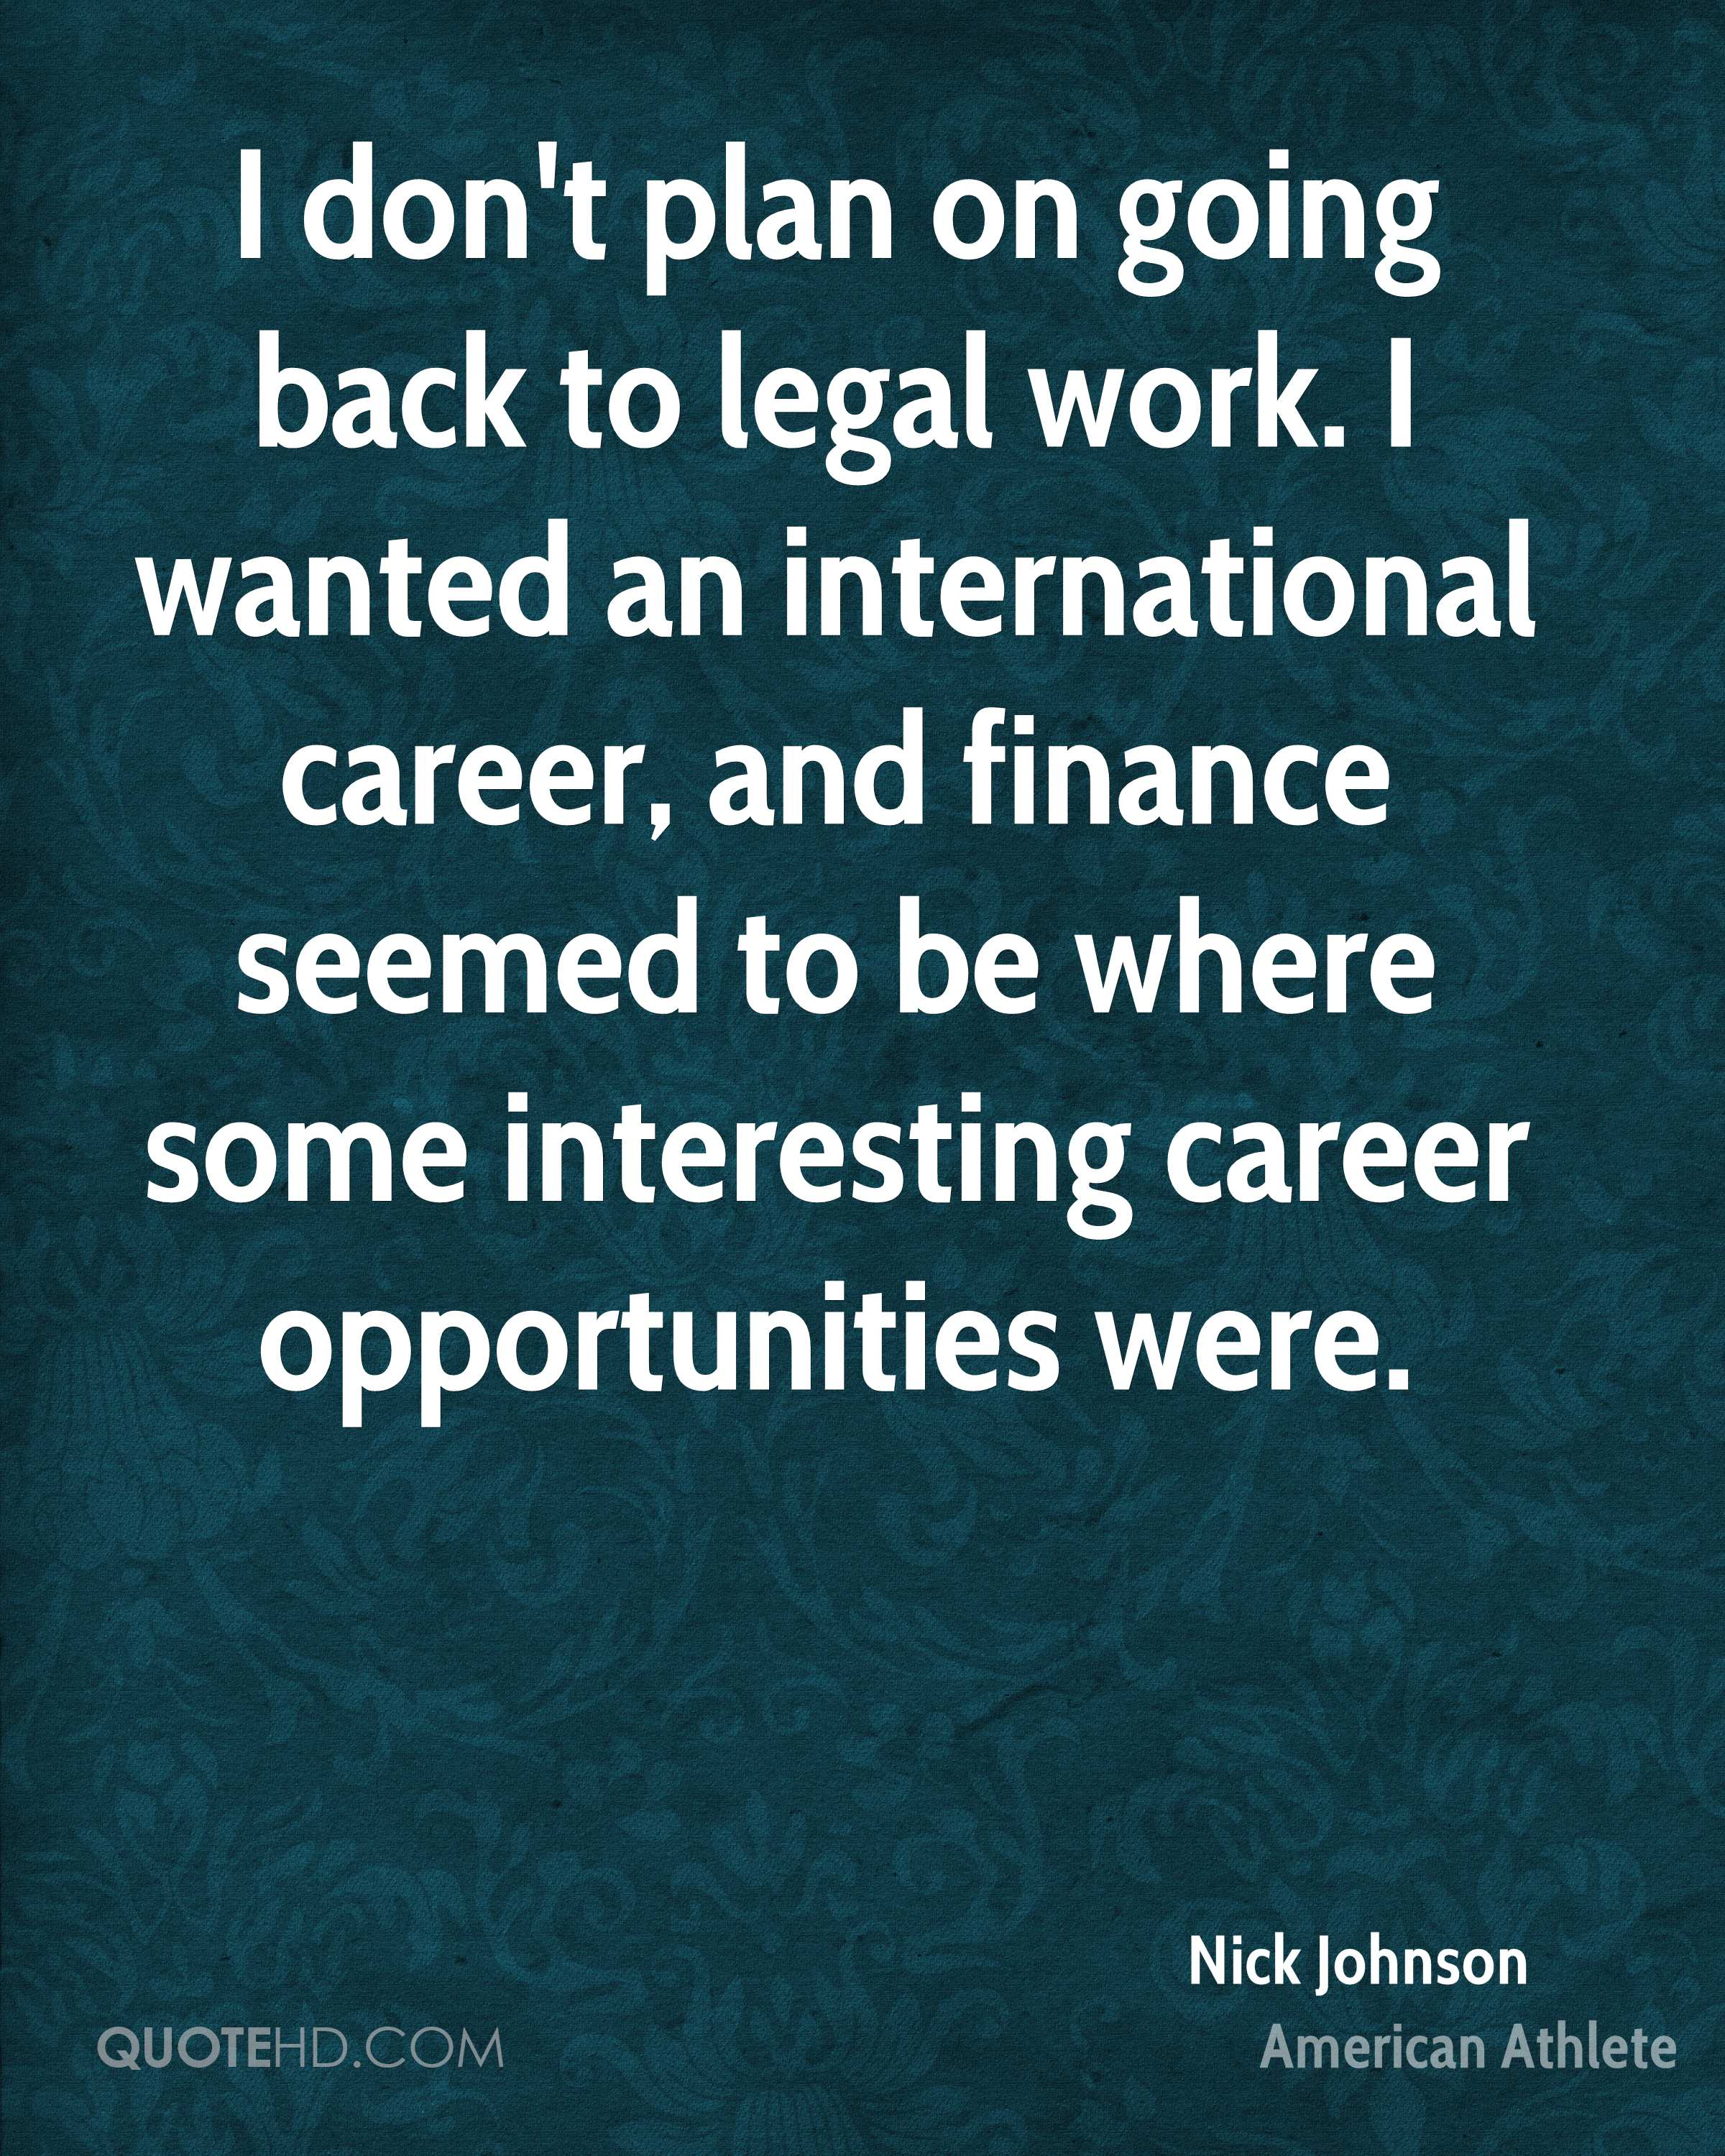 I don't plan on going back to legal work. I wanted an international career, and finance seemed to be where some interesting career opportunities were.